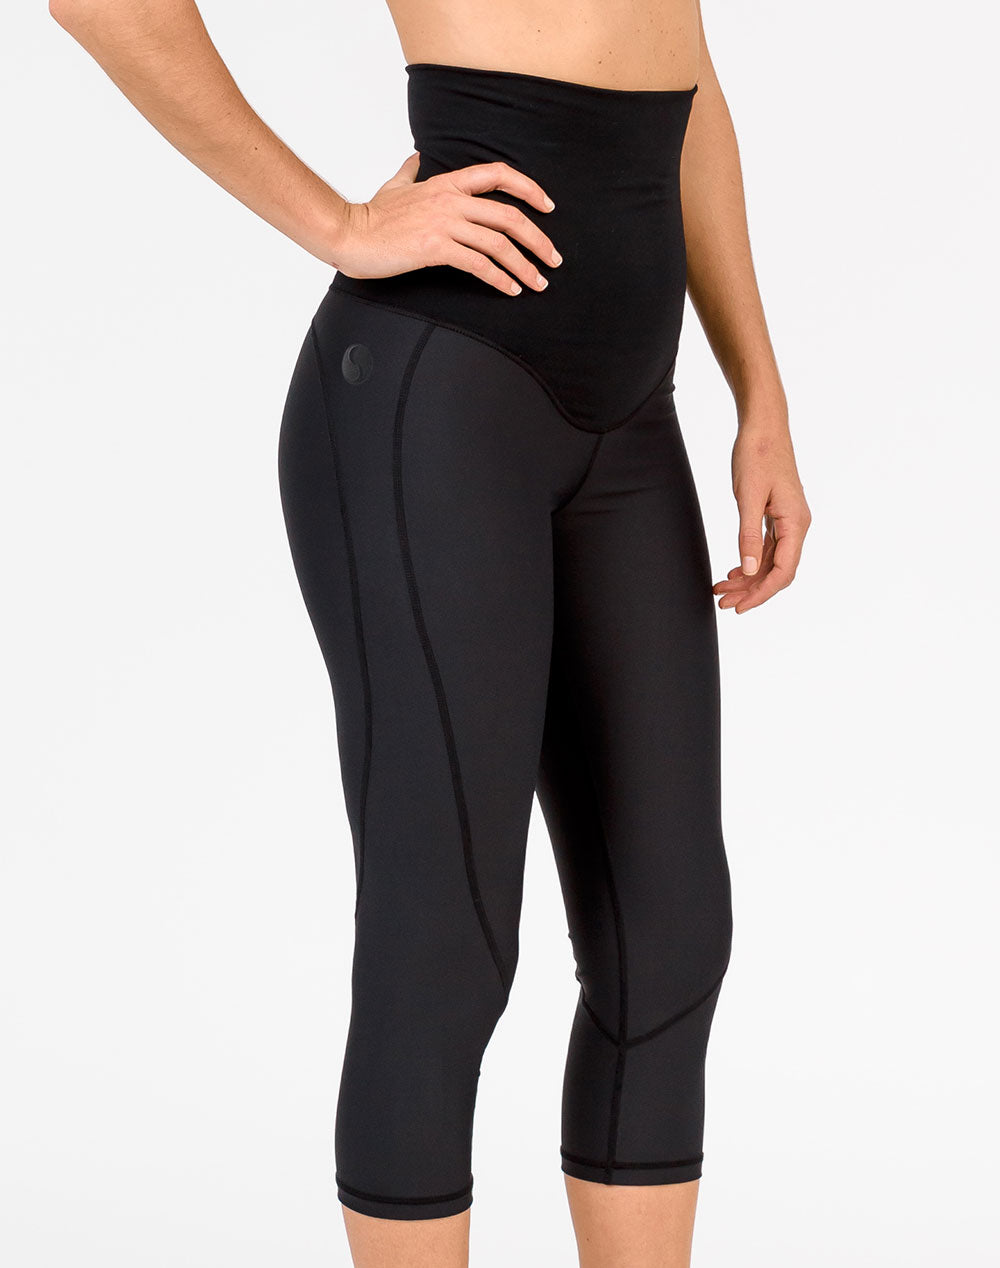 front view active mom wearing black 3/4 maternity leggings